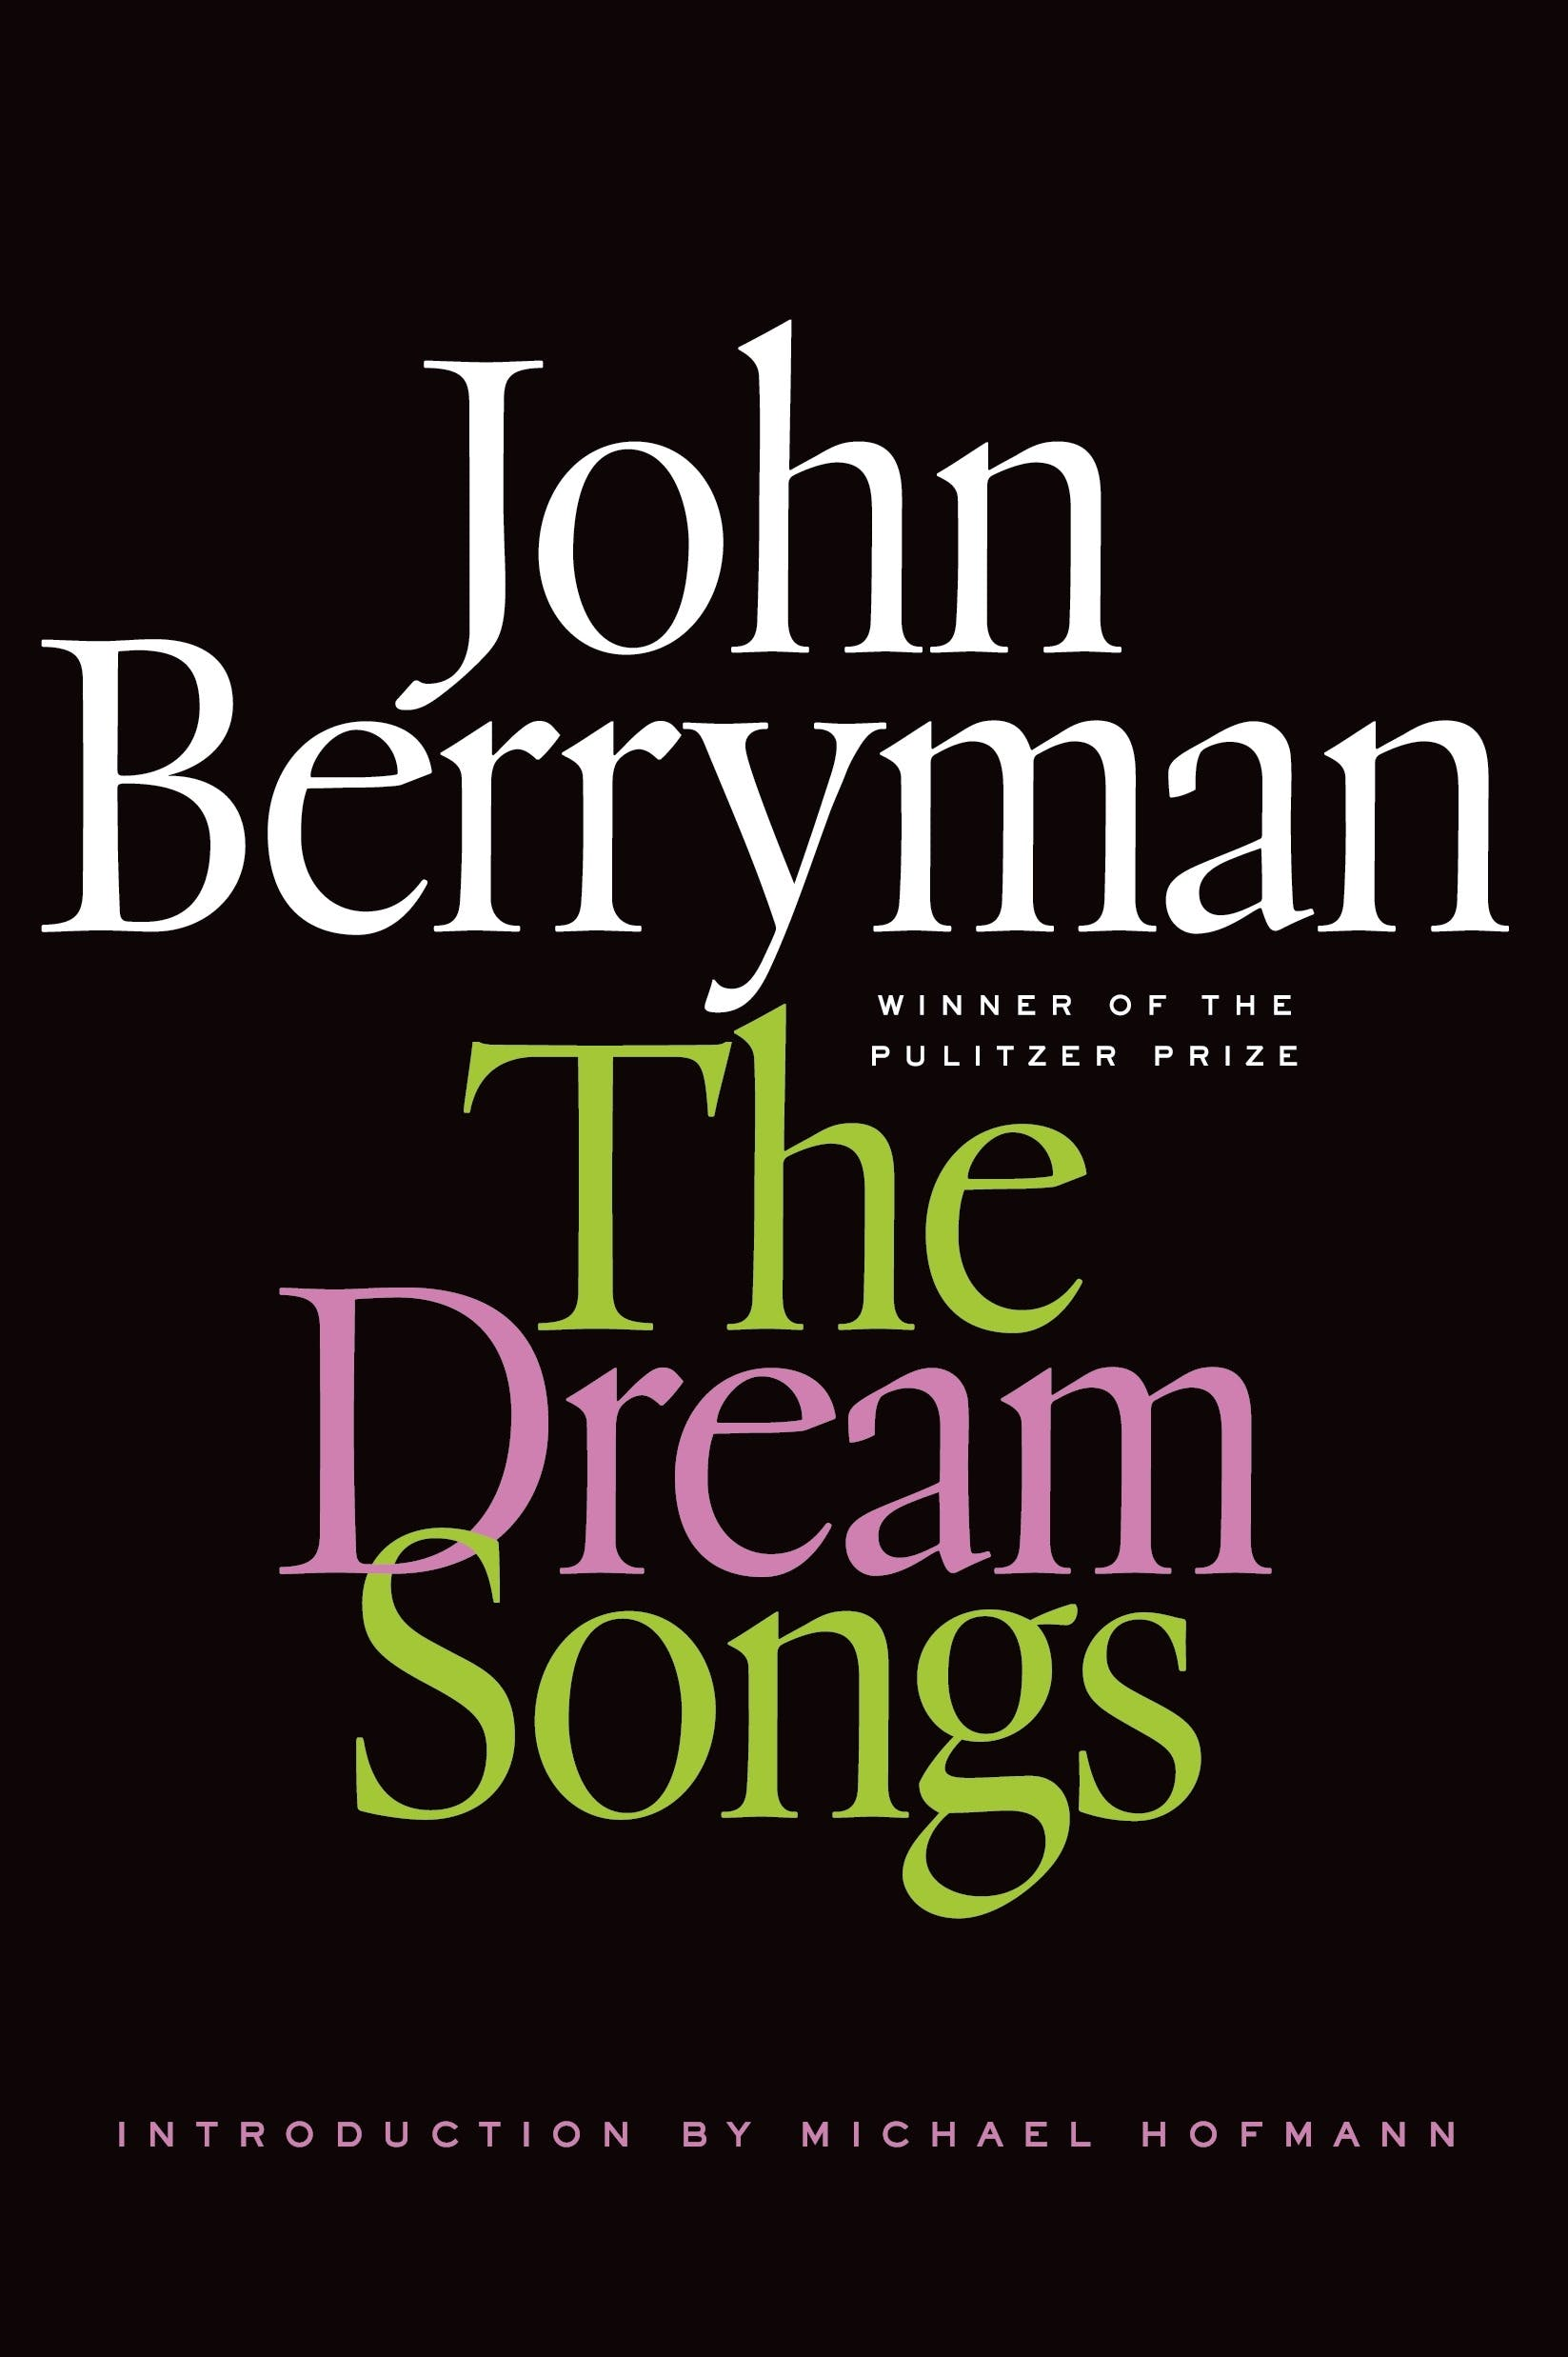 Image of The Dream Songs